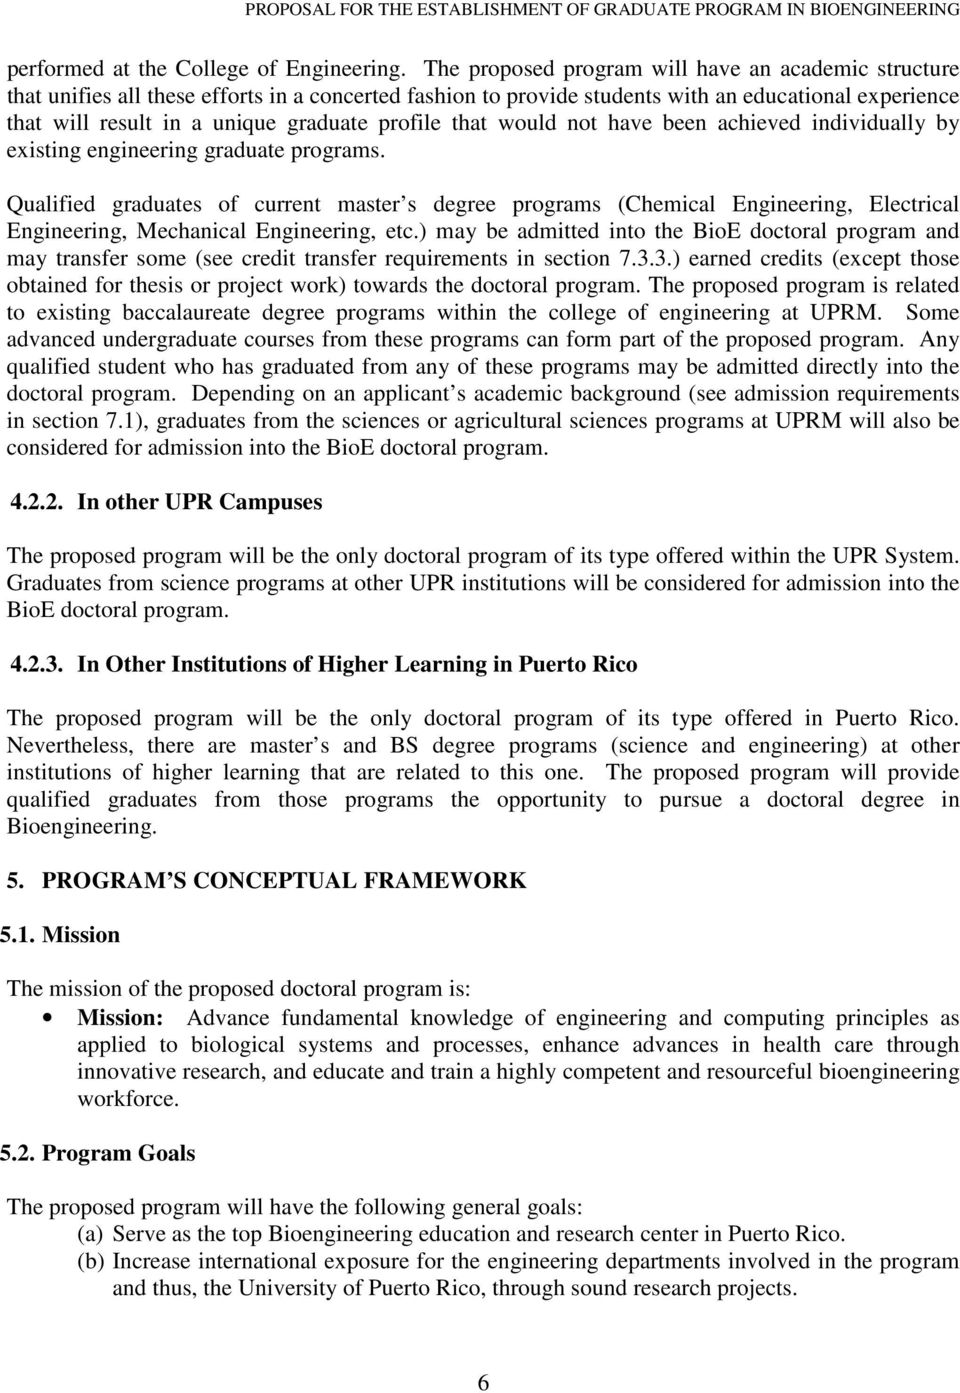 profile that would not have been achieved individually by existing engineering graduate programs.